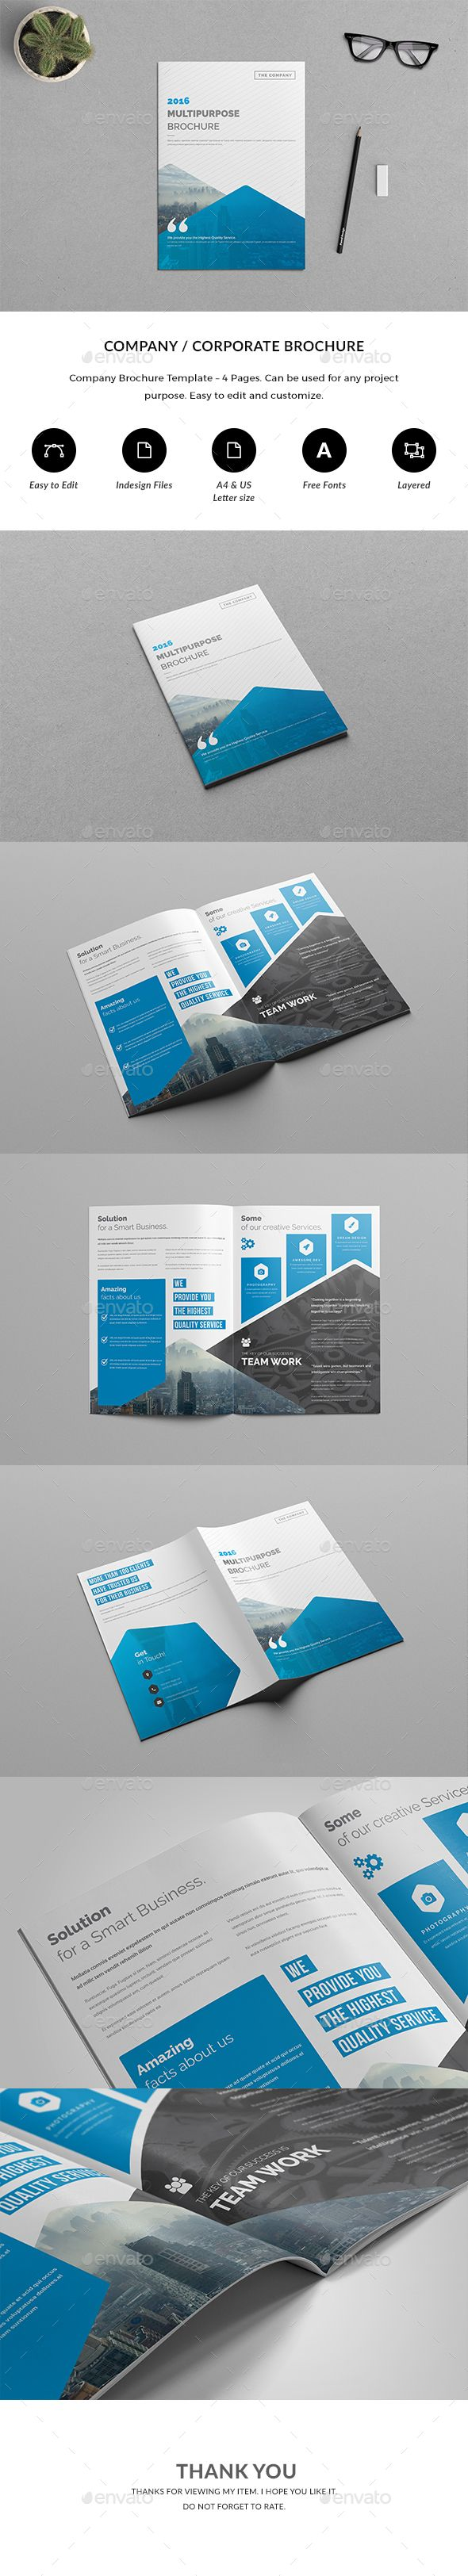 Brochure Pages Brochures Brochure Template And Corporate - 4 page brochure template